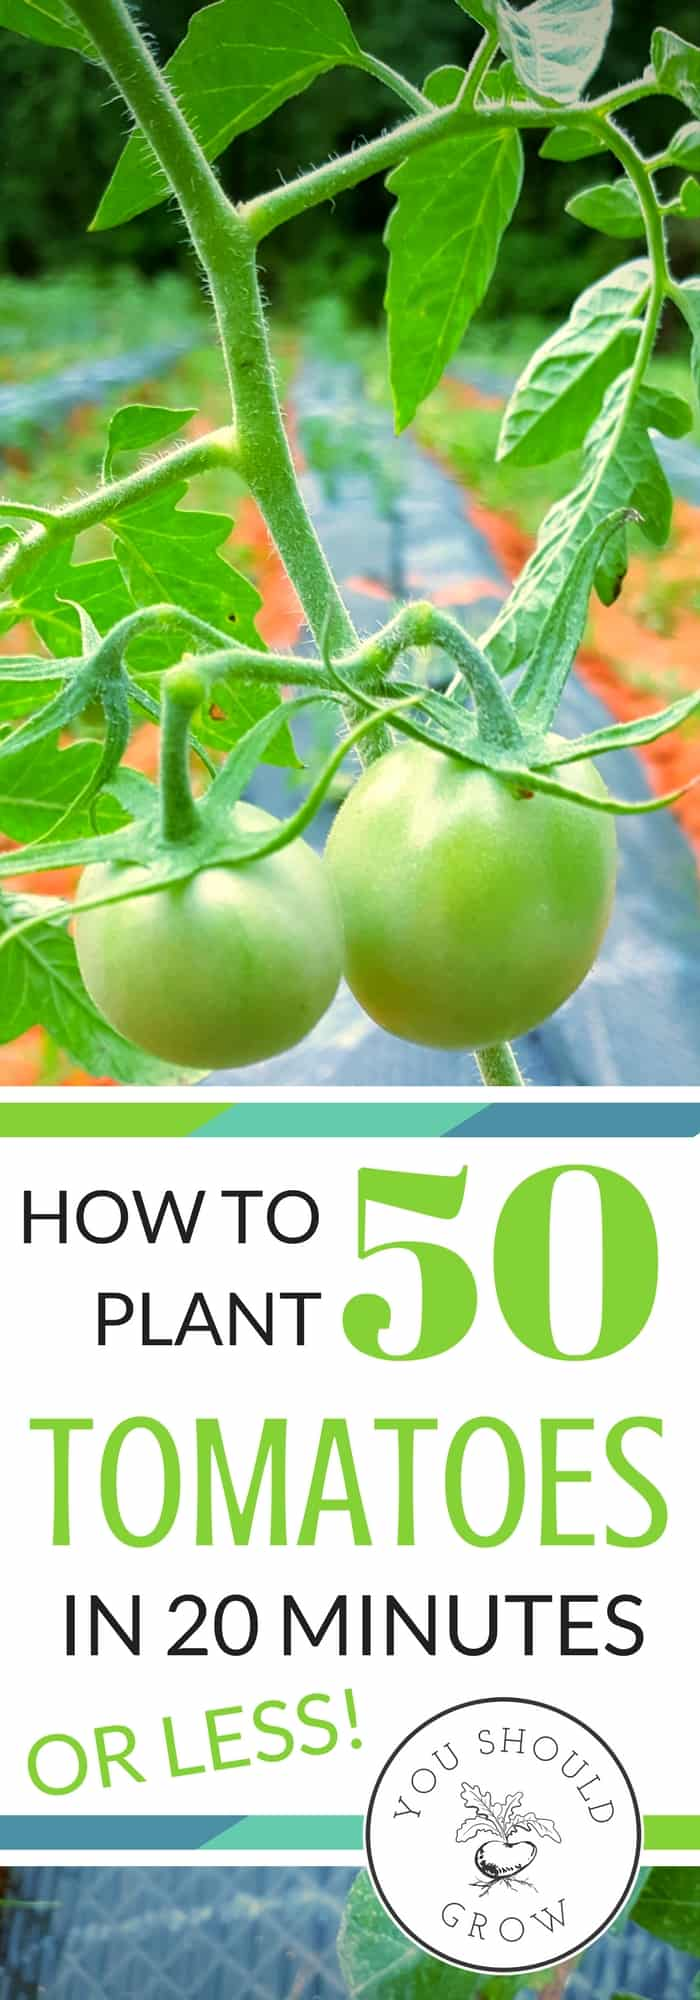 Find out the awesome tool we use to get 50 tomatoes in the ground in 20 minutes! Not only is it the fastest way to get plants in the garden, it will save you a lot of back and leg pain. Every gardener needs these amazing tools.